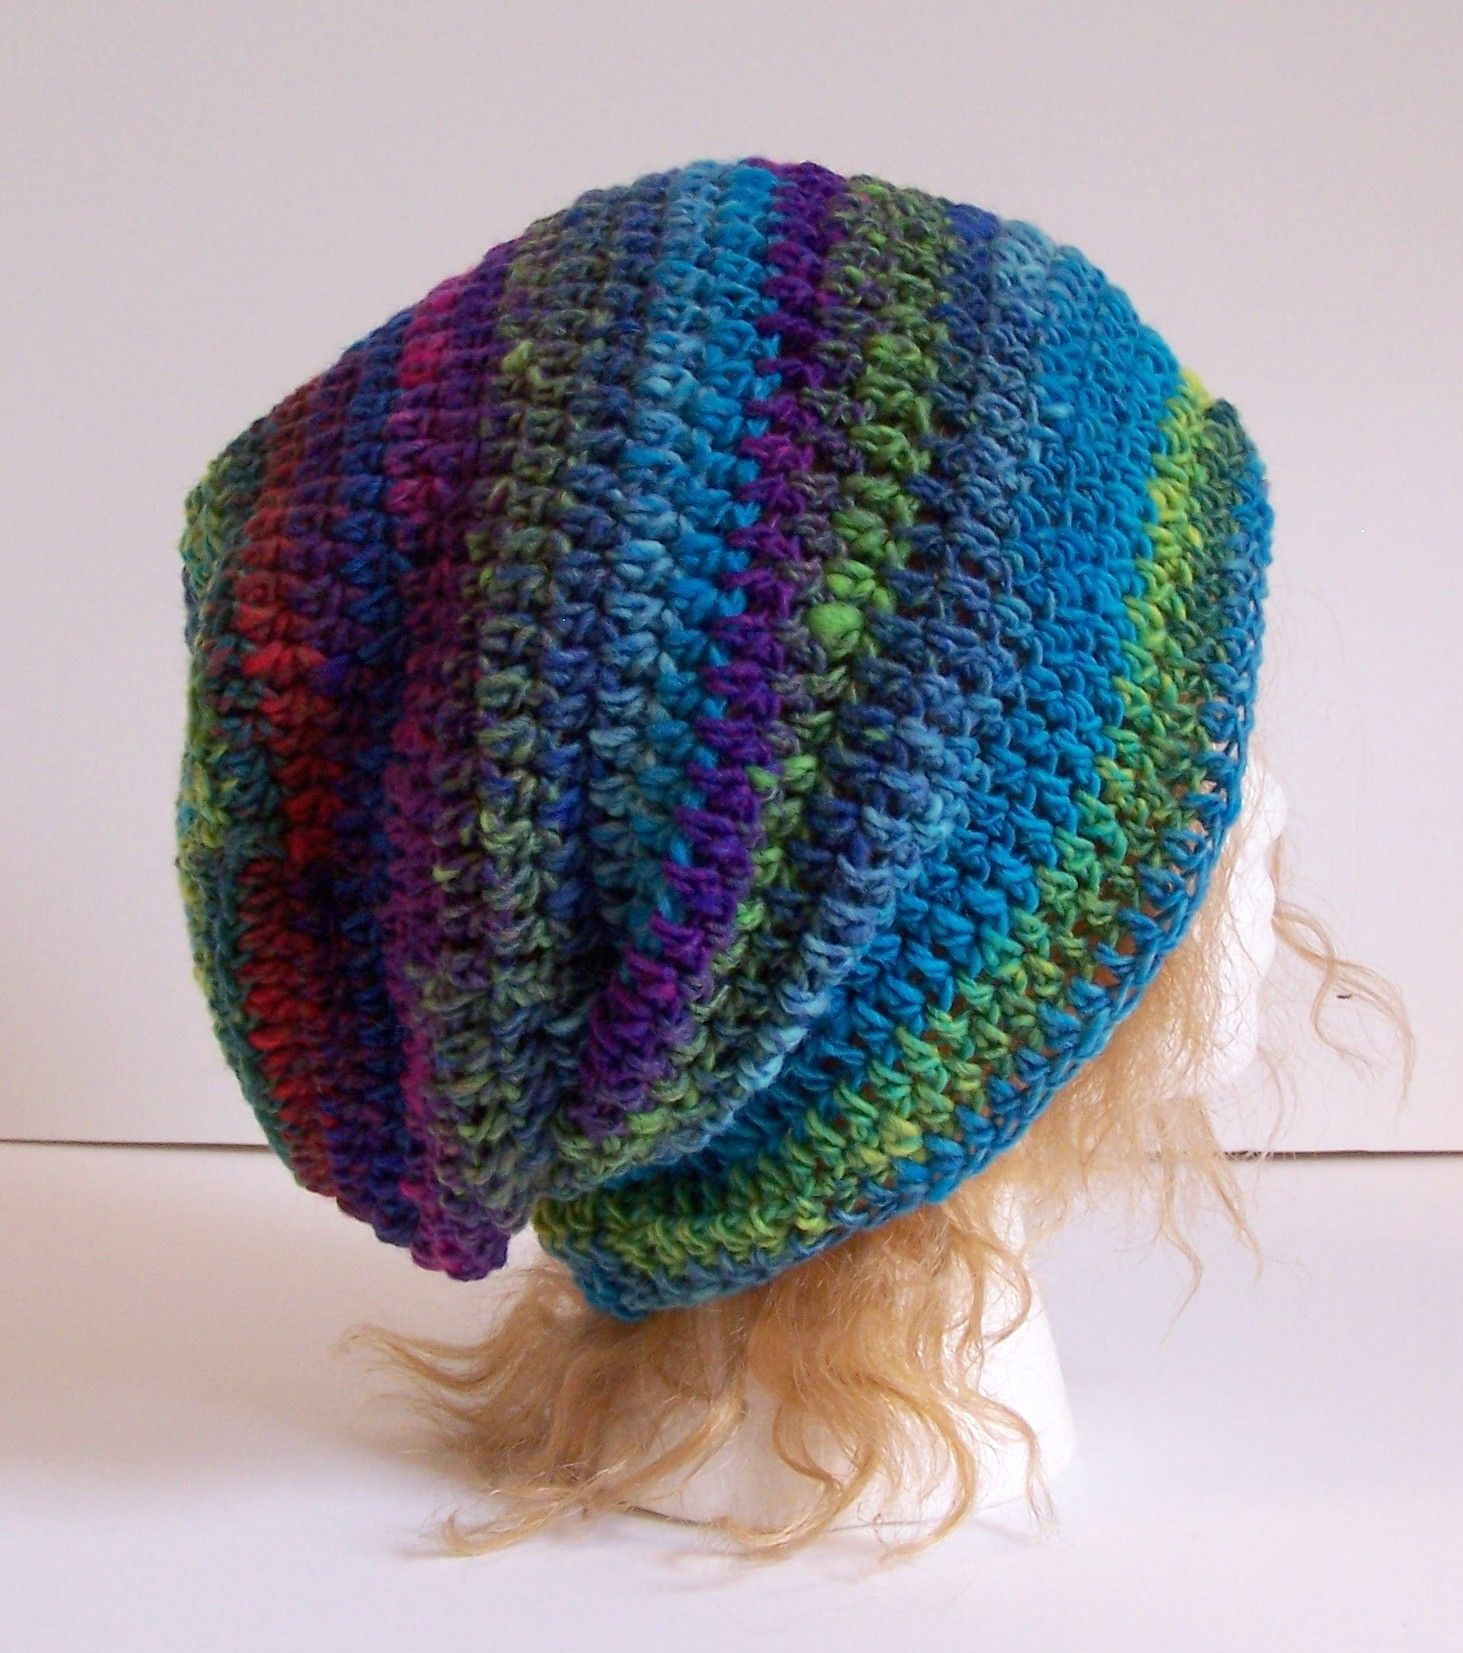 Outlier Slouchy Toque in a worsted weight version. Free pattern on Ravelry & Craftsy.